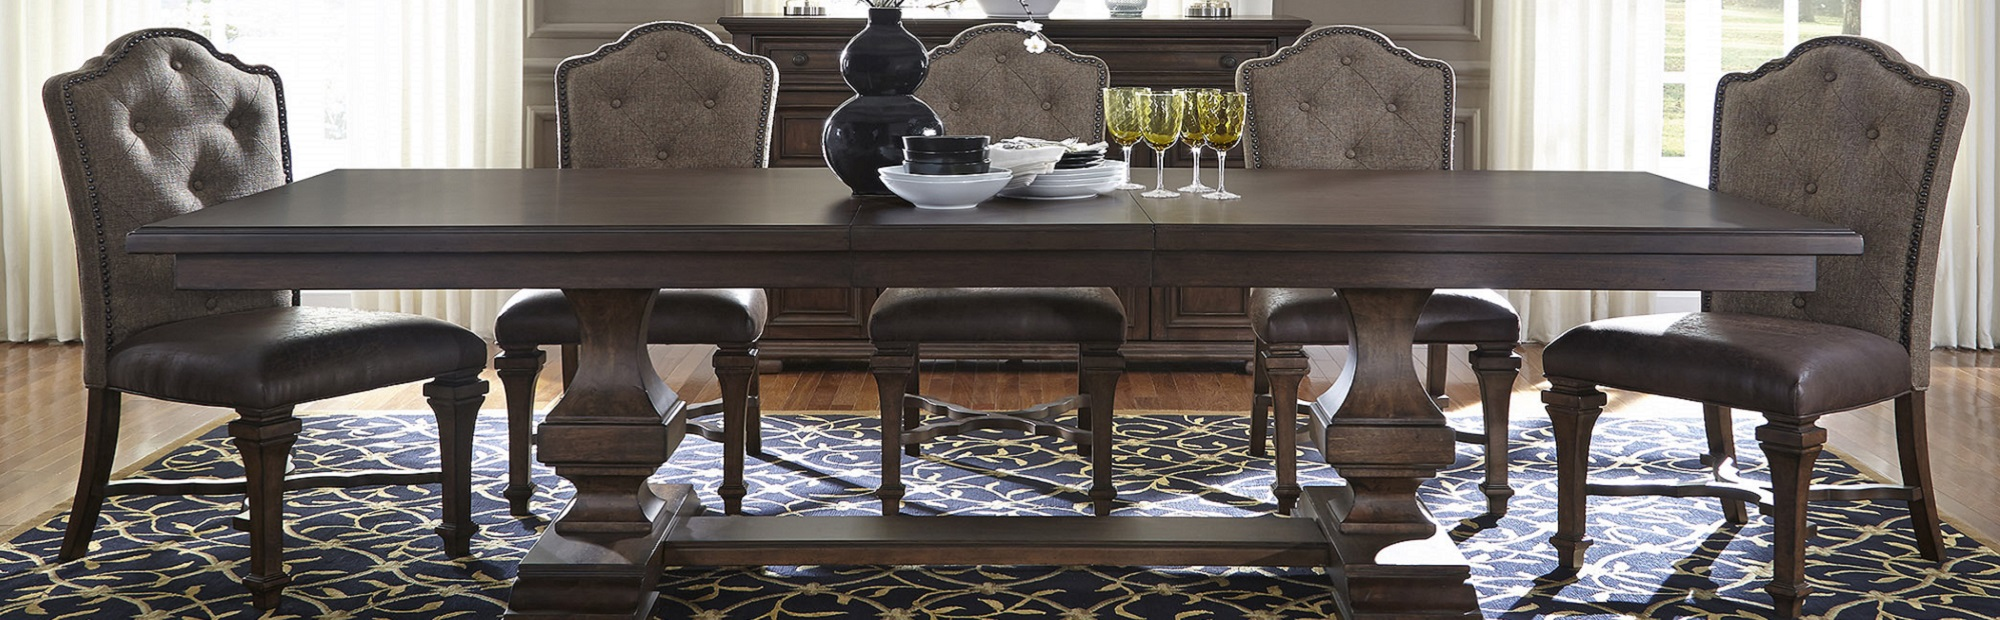 Stylish Home Furnishings At Our Baltimore Md Discount Furniture Store